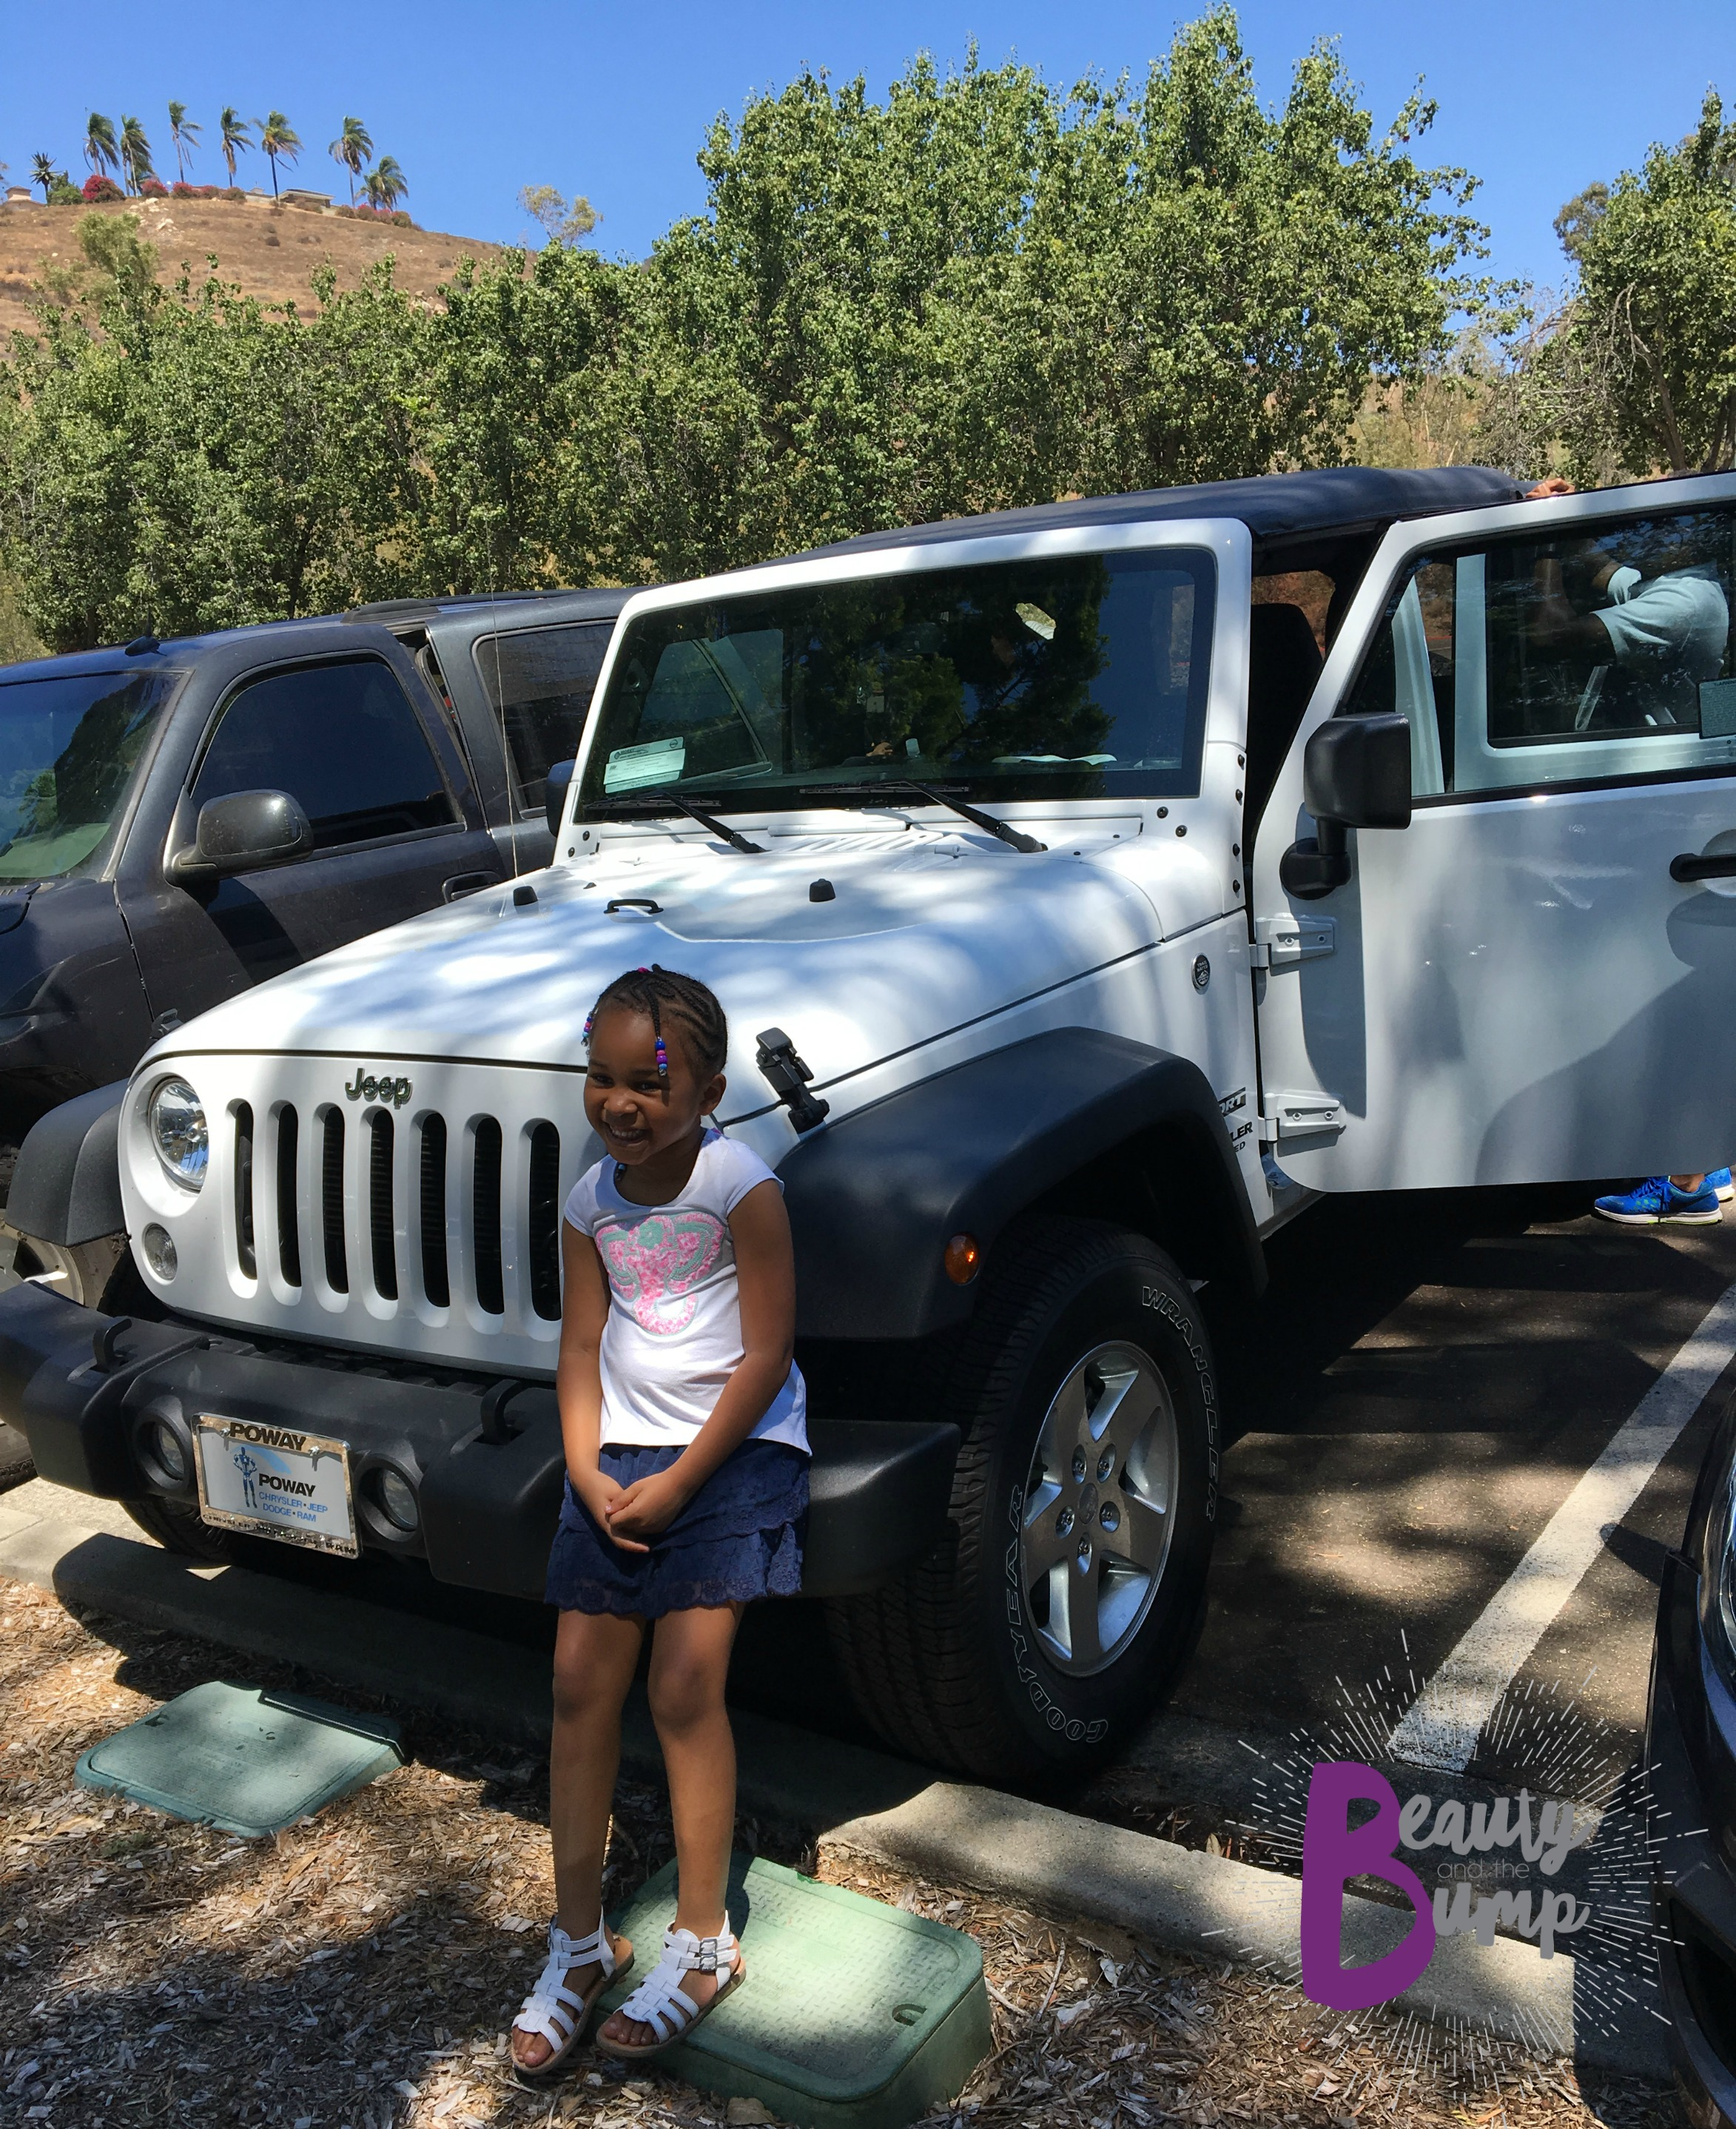 patriot ca in sp carfinder salvage jeep certificate sale diego online left auto view black copart on san en lot auctions